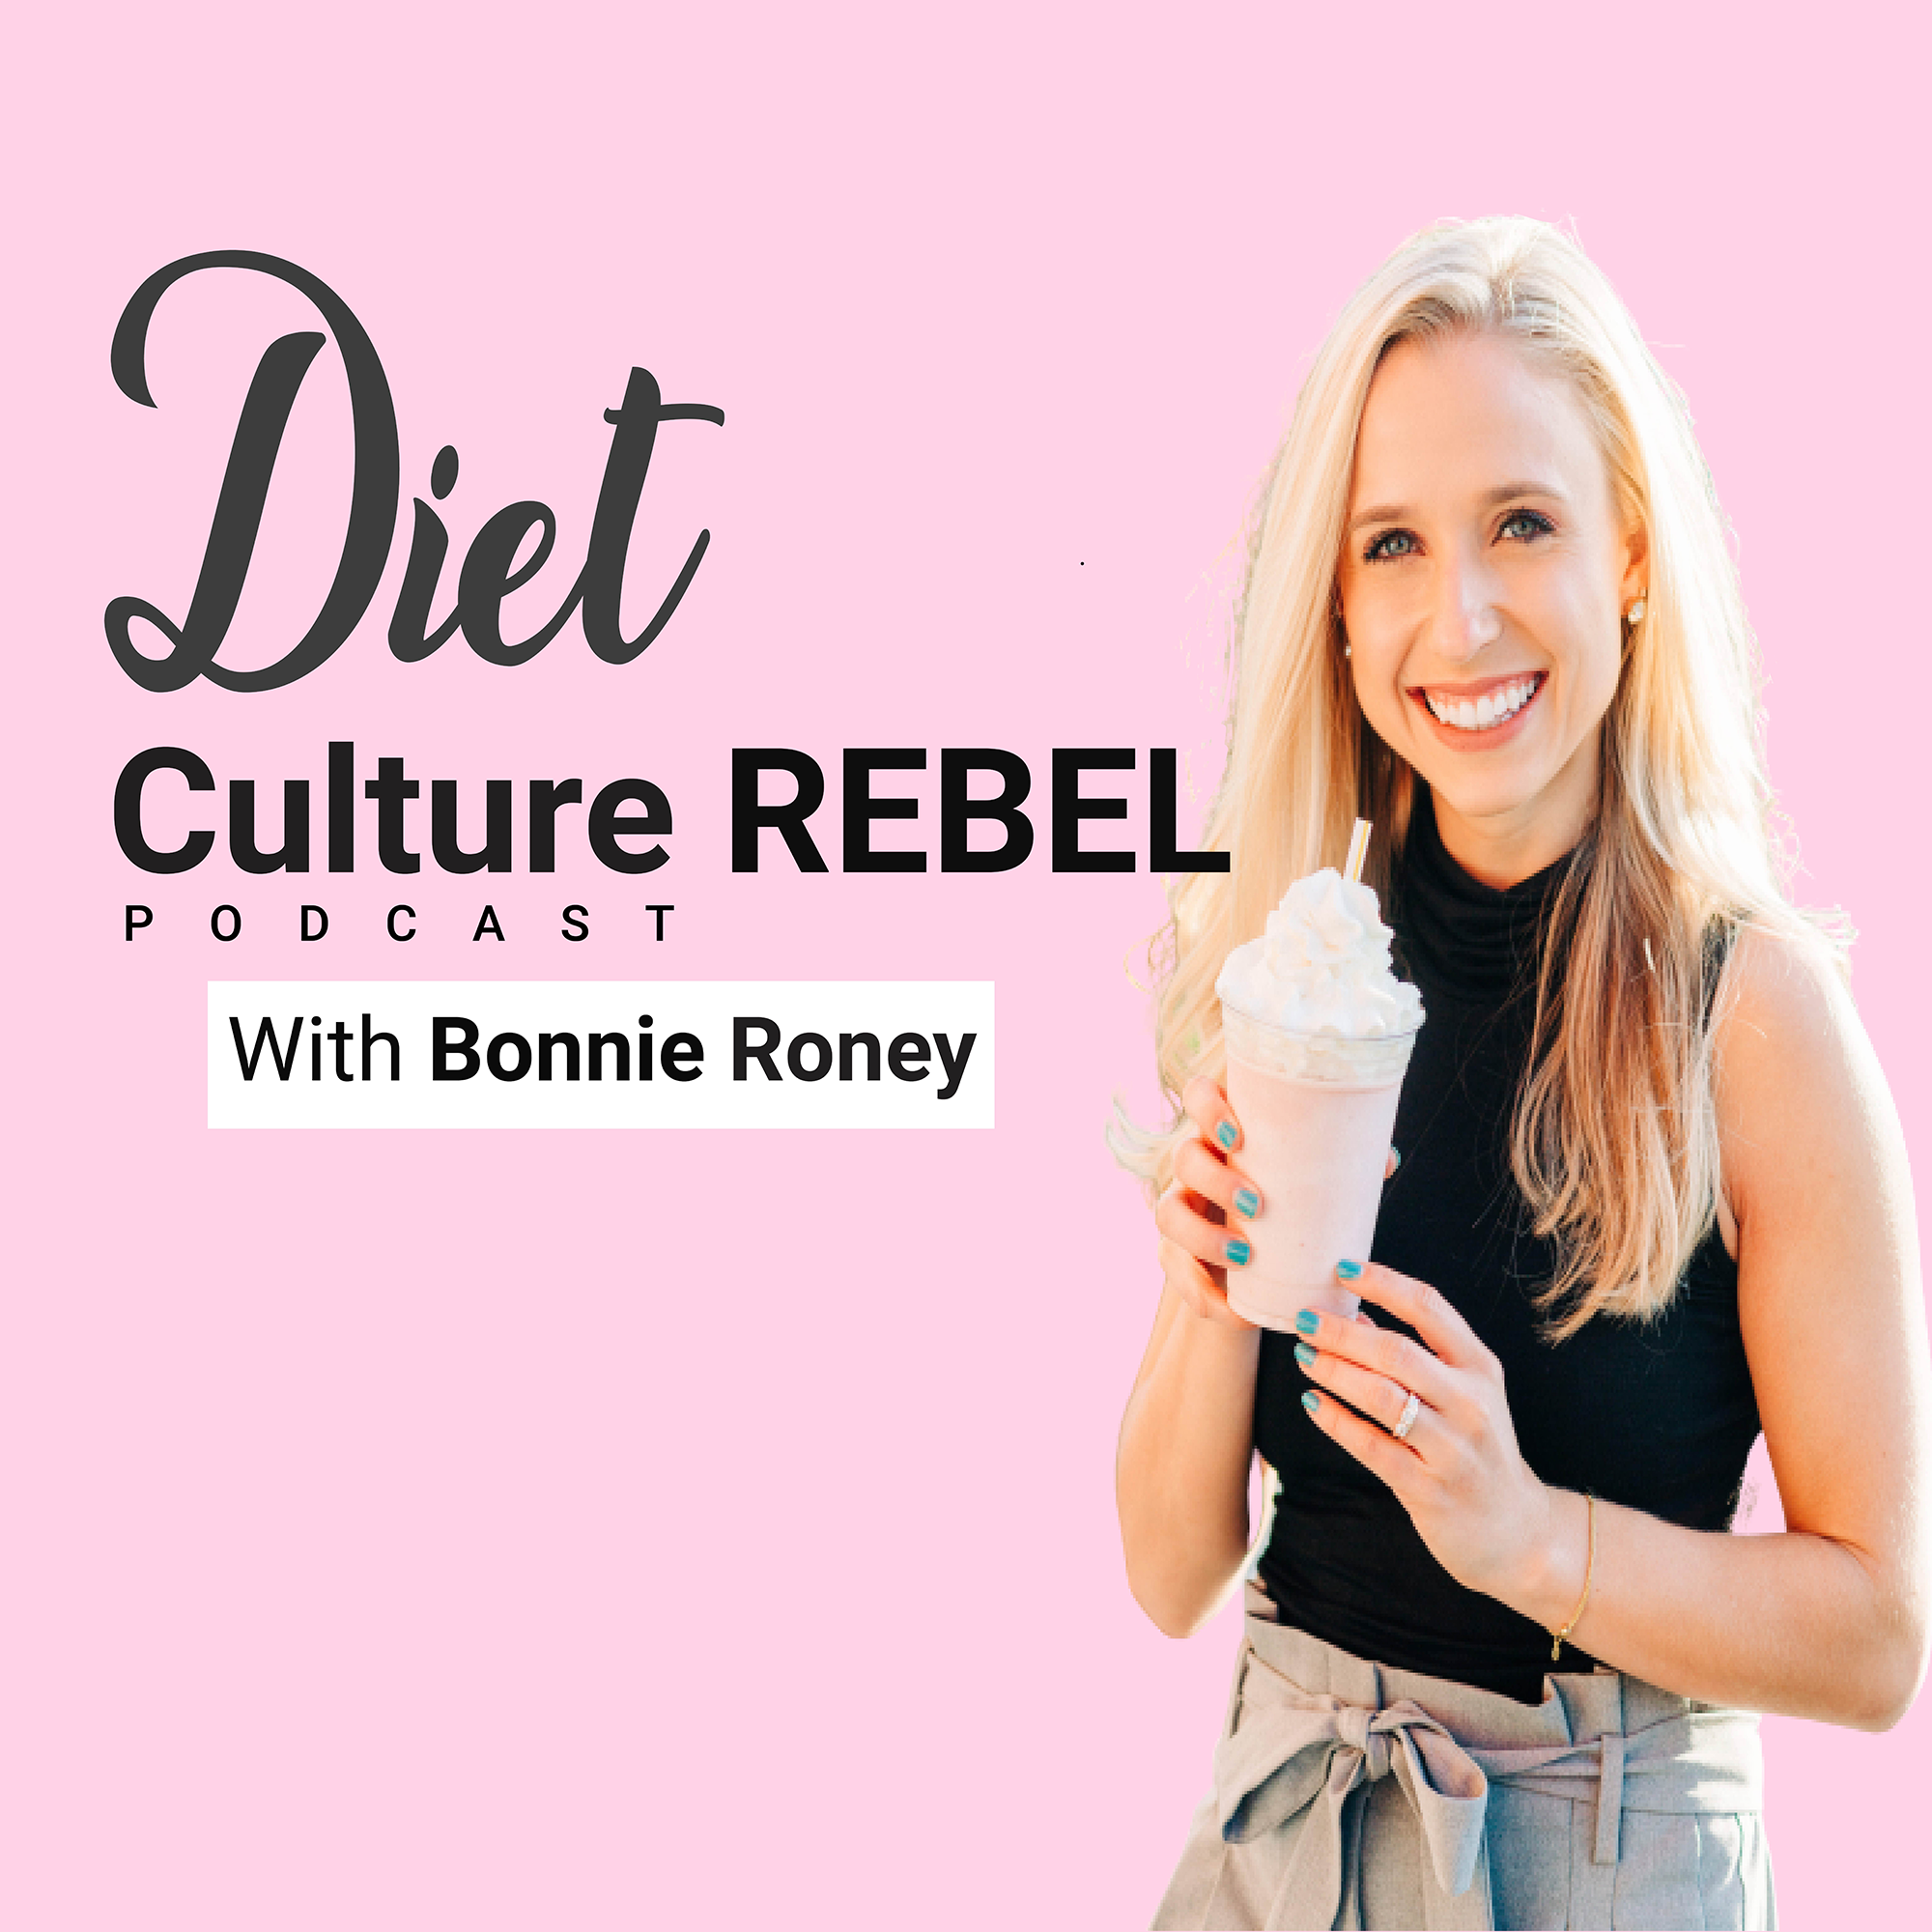 Changing your mindset on body image with Catie Lynch